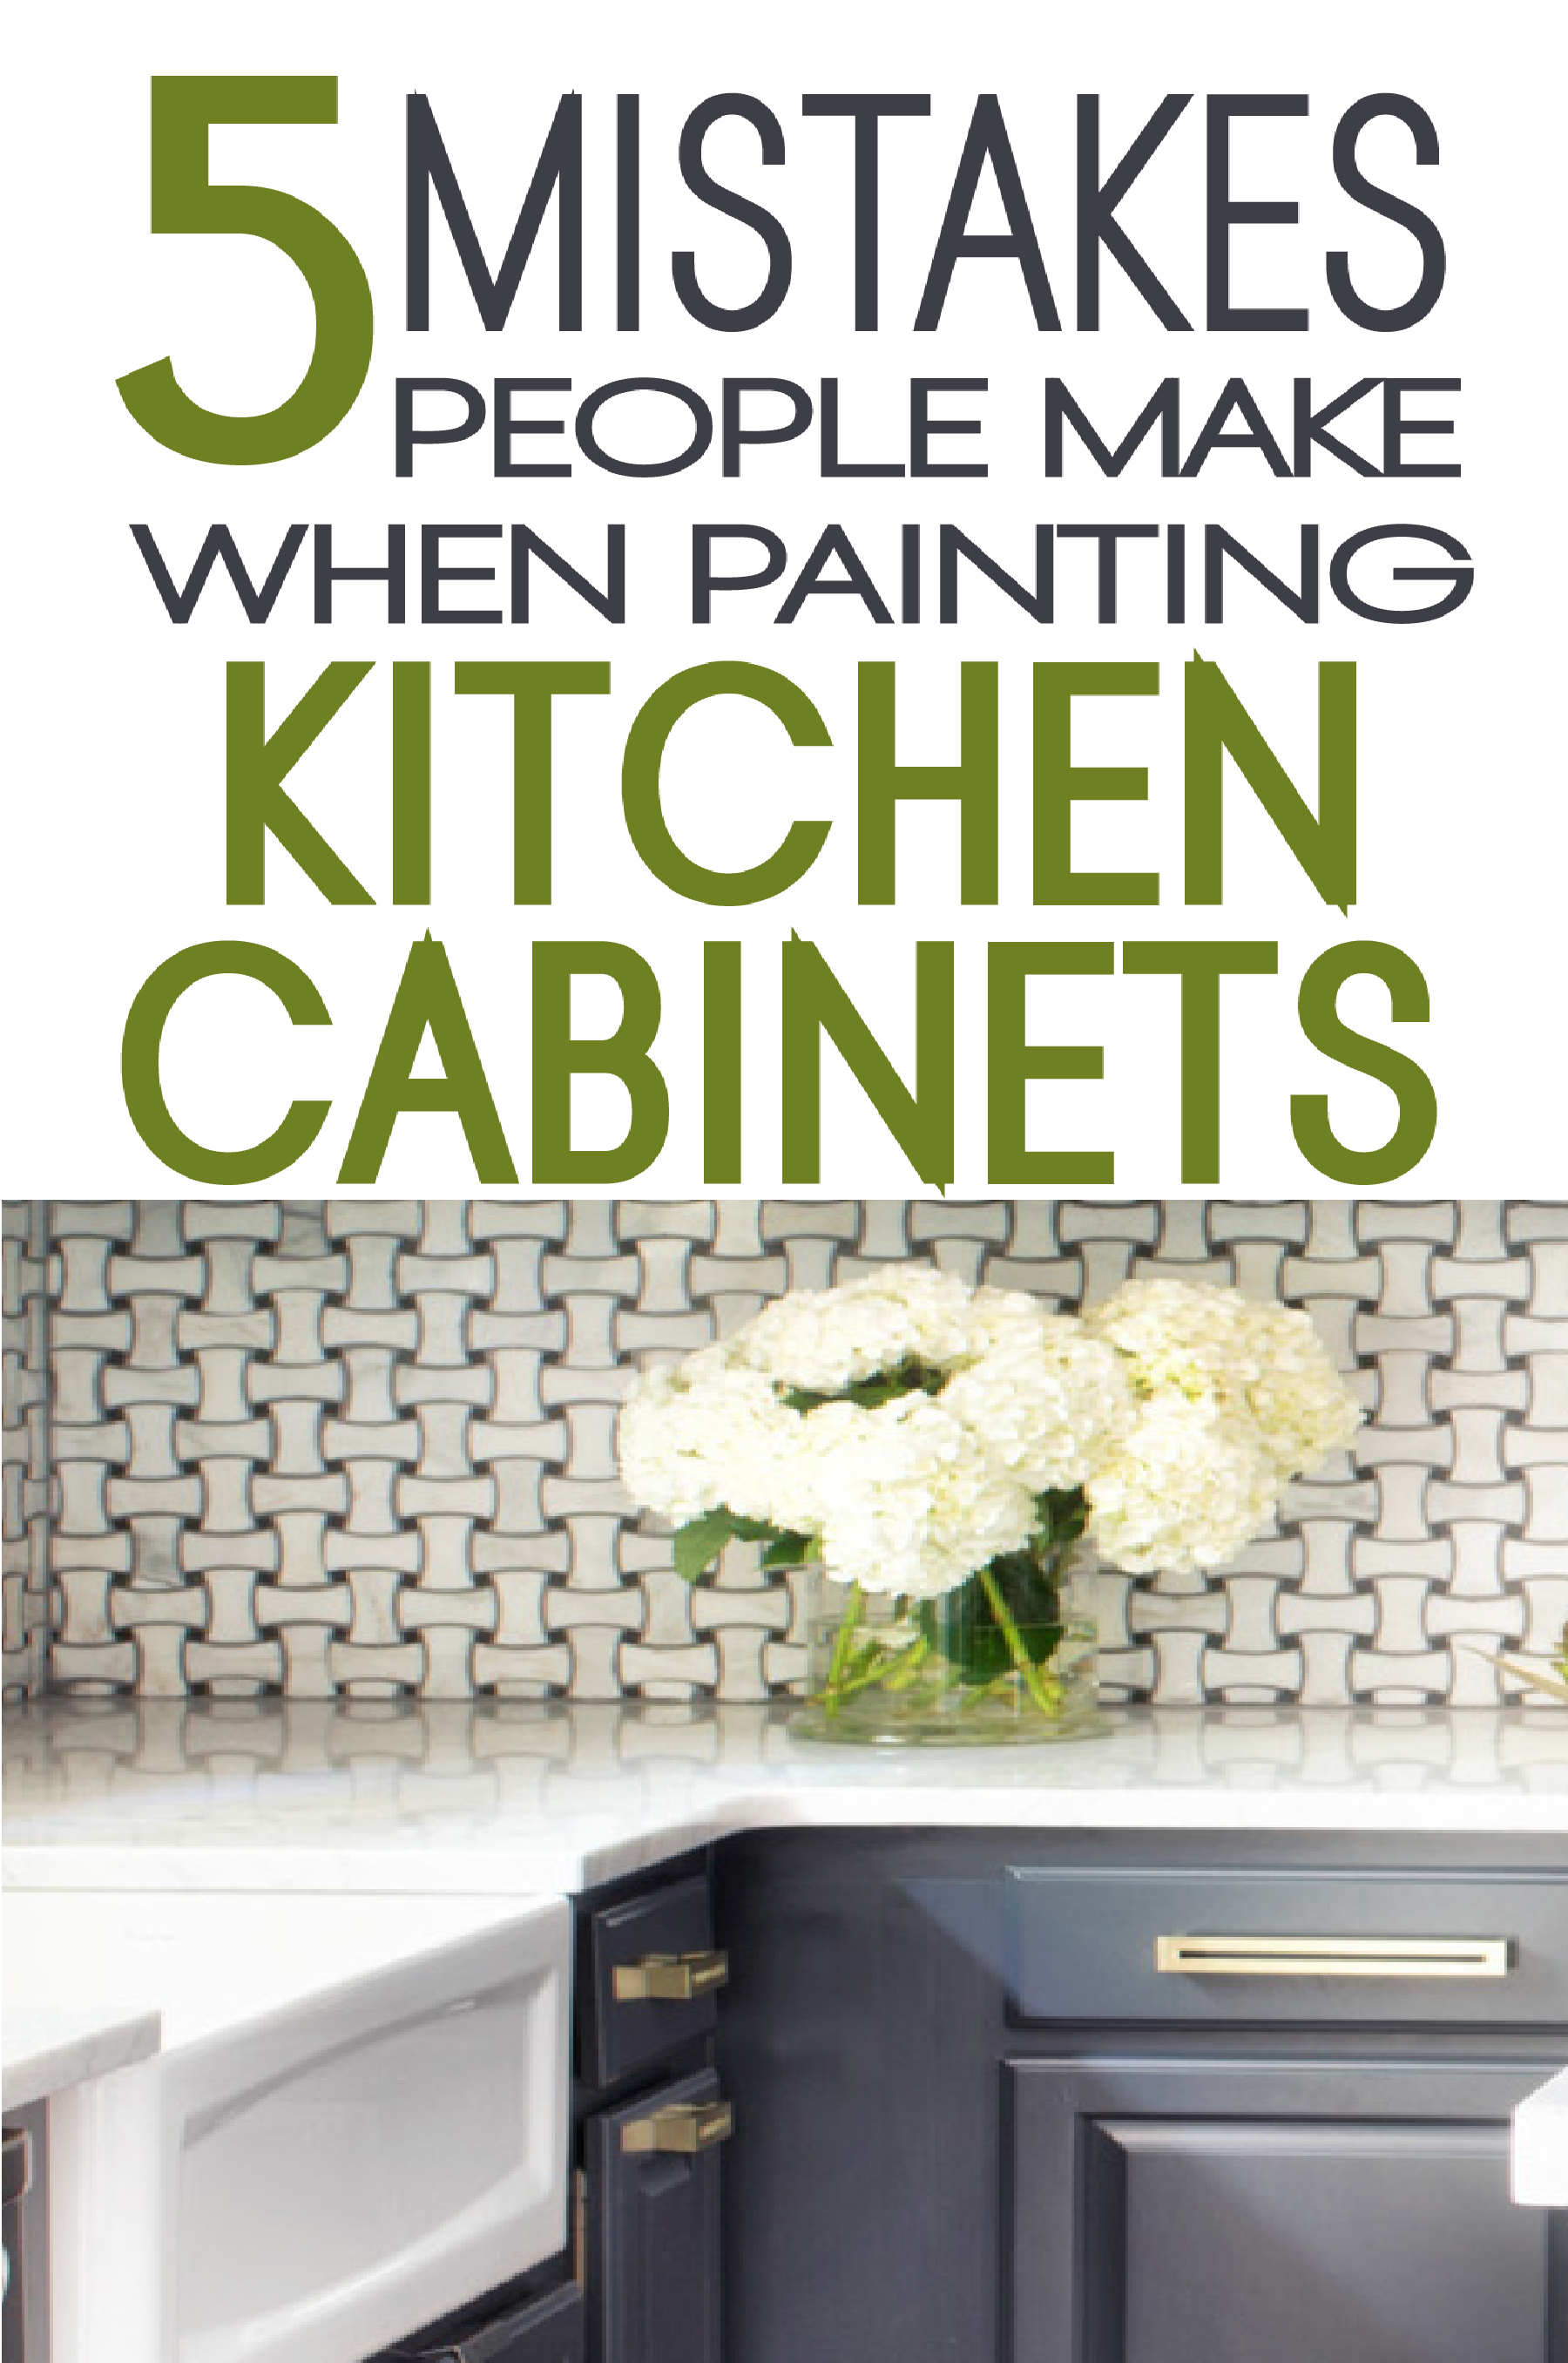 Learn From Others And Avoid These Common Mistakes Made When Painting  Kitchen Cabinets.